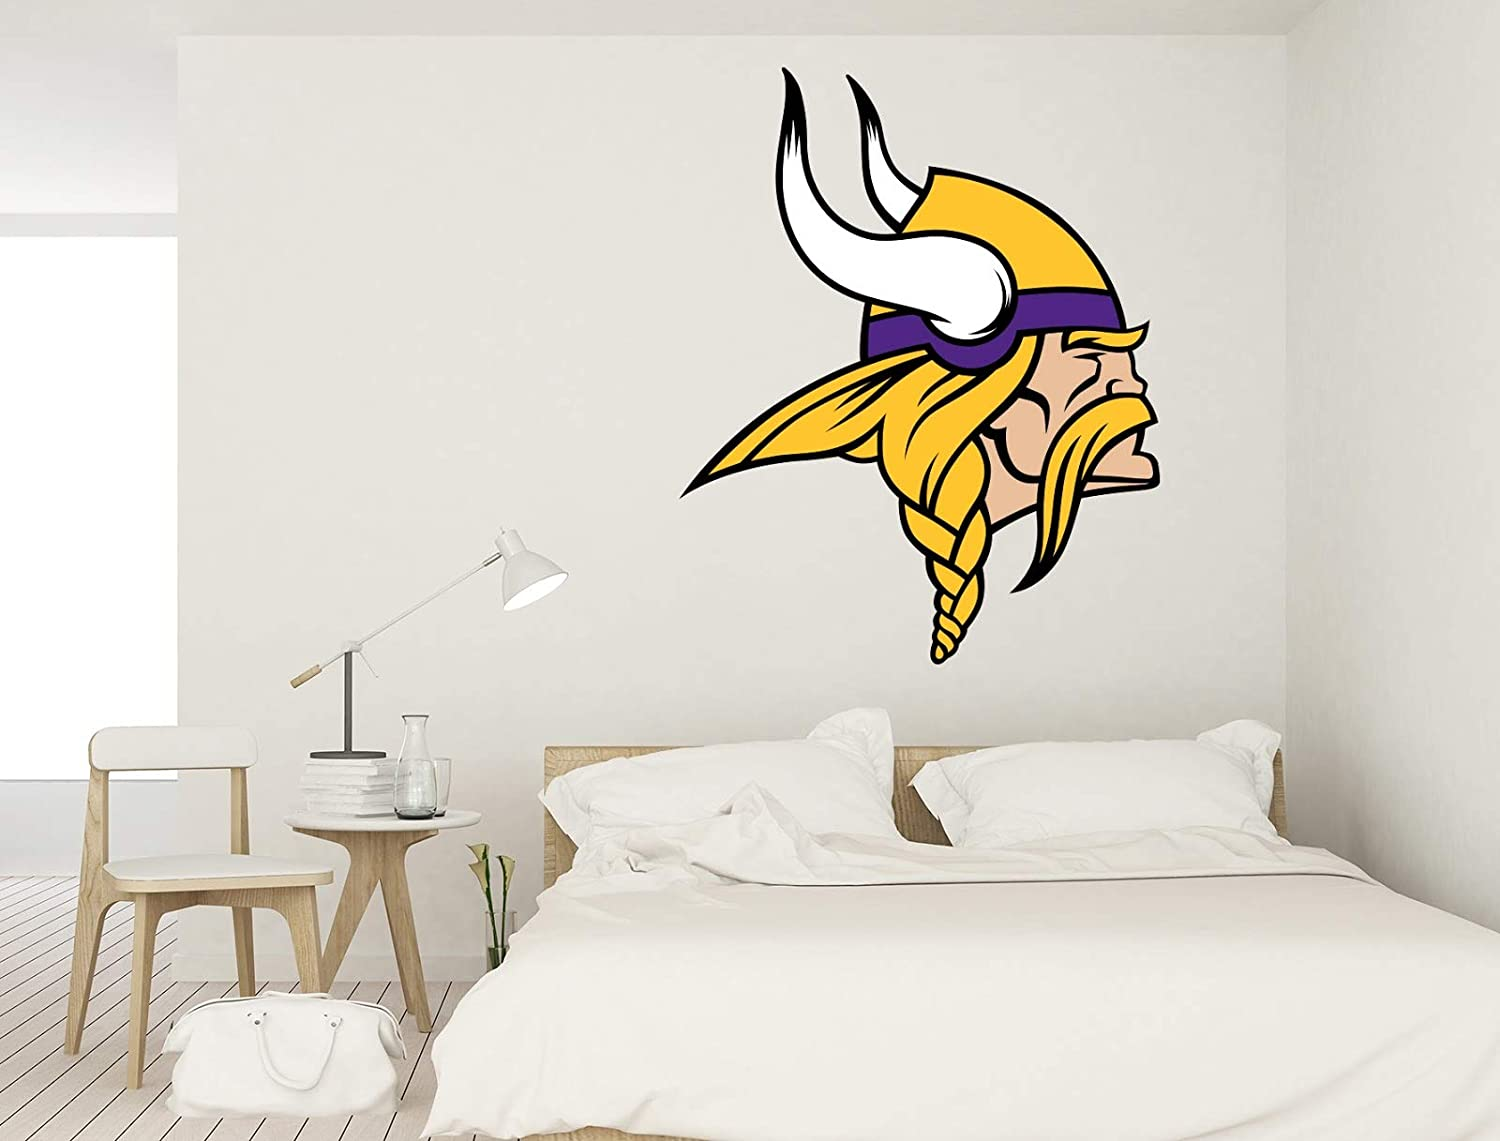 Ottos's Art Sports - Removable Wall Decal Vinyl for Home Decoration 15